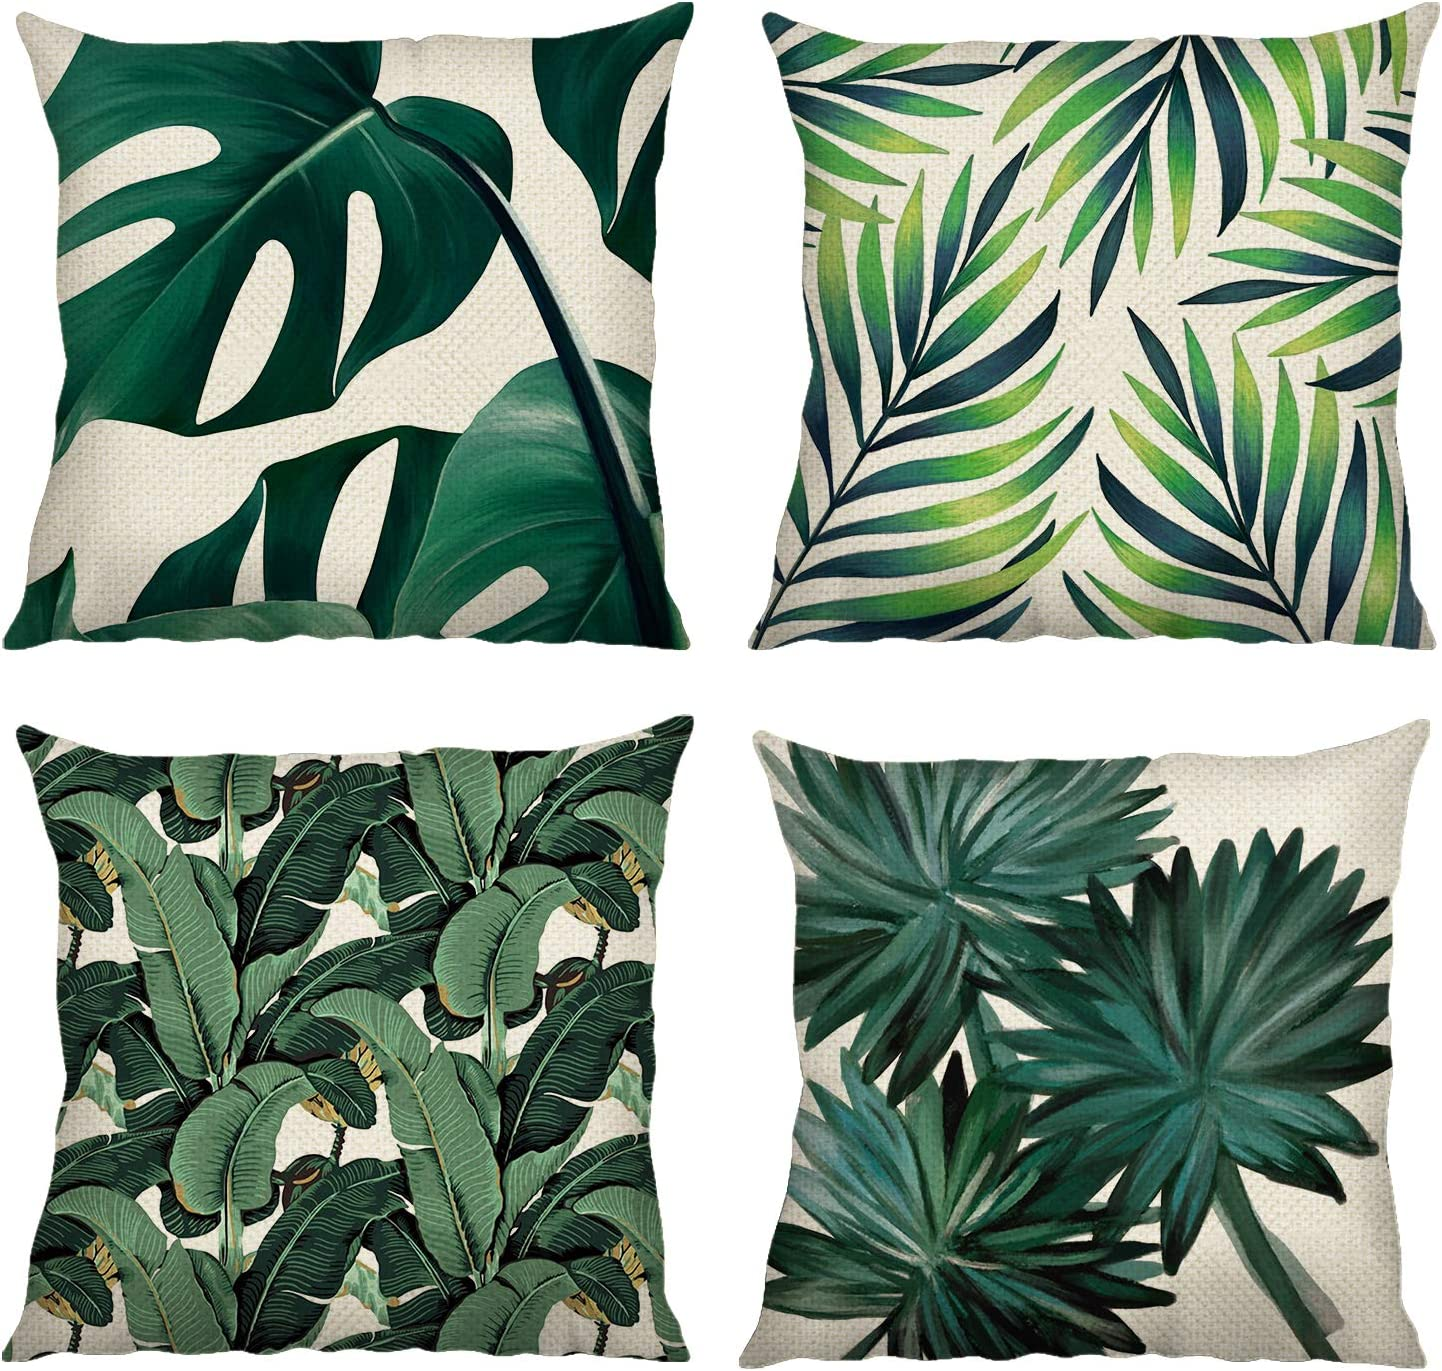 Bonhause Tropical Leaves Throw Pillow Covers 20 x 20 Inch Set of 20 Green  Leaf Decorative Pillow Cases Polyester Linen Cushion Covers for Sofa Couch  ...